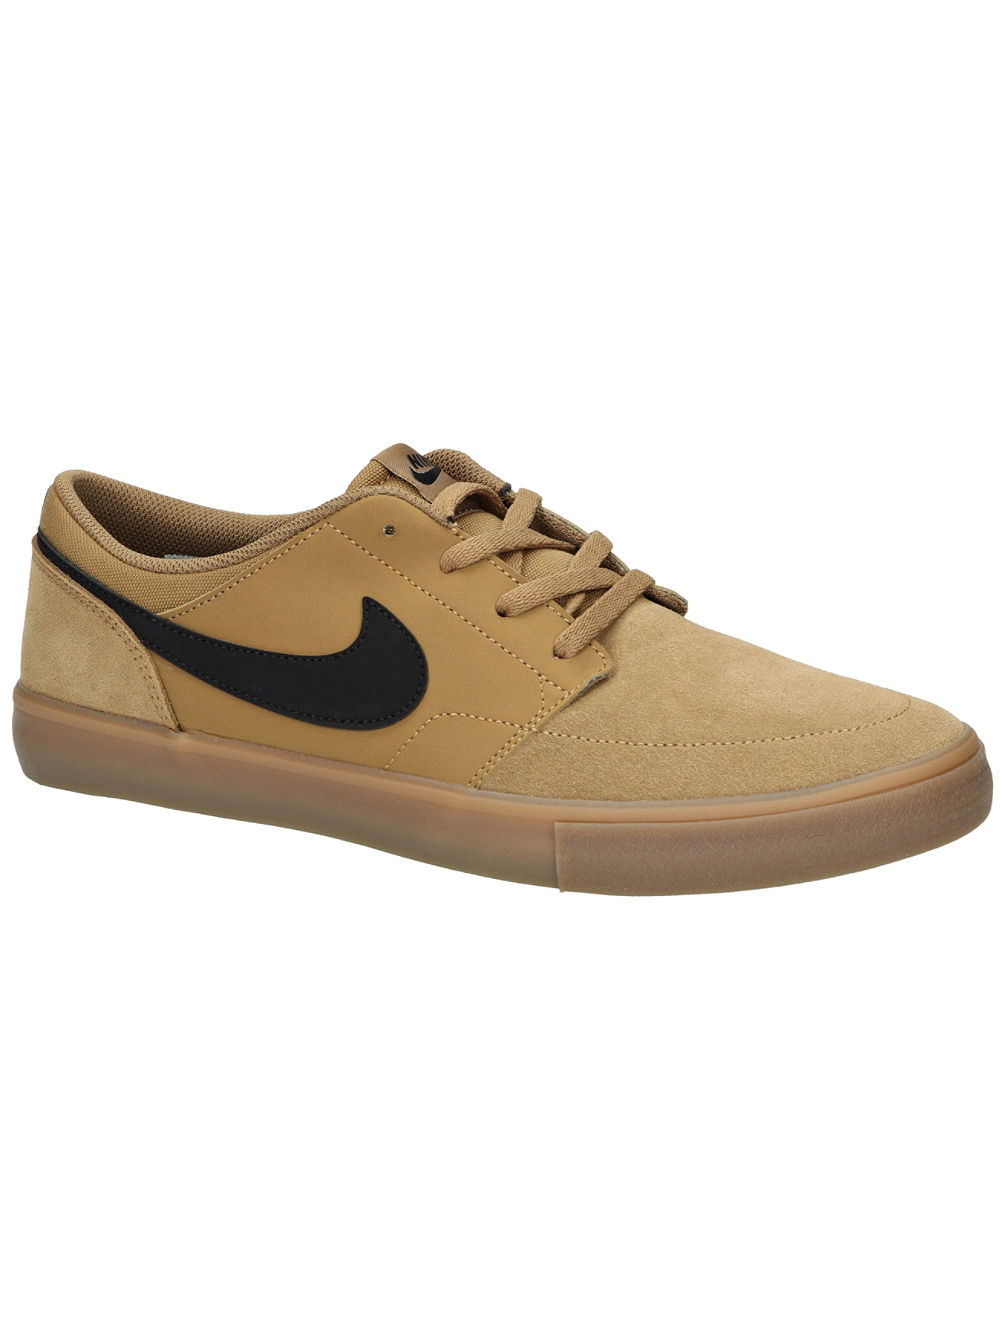 buy nike sb solarsoft portmore ii skate shoes online at blue. Black Bedroom Furniture Sets. Home Design Ideas